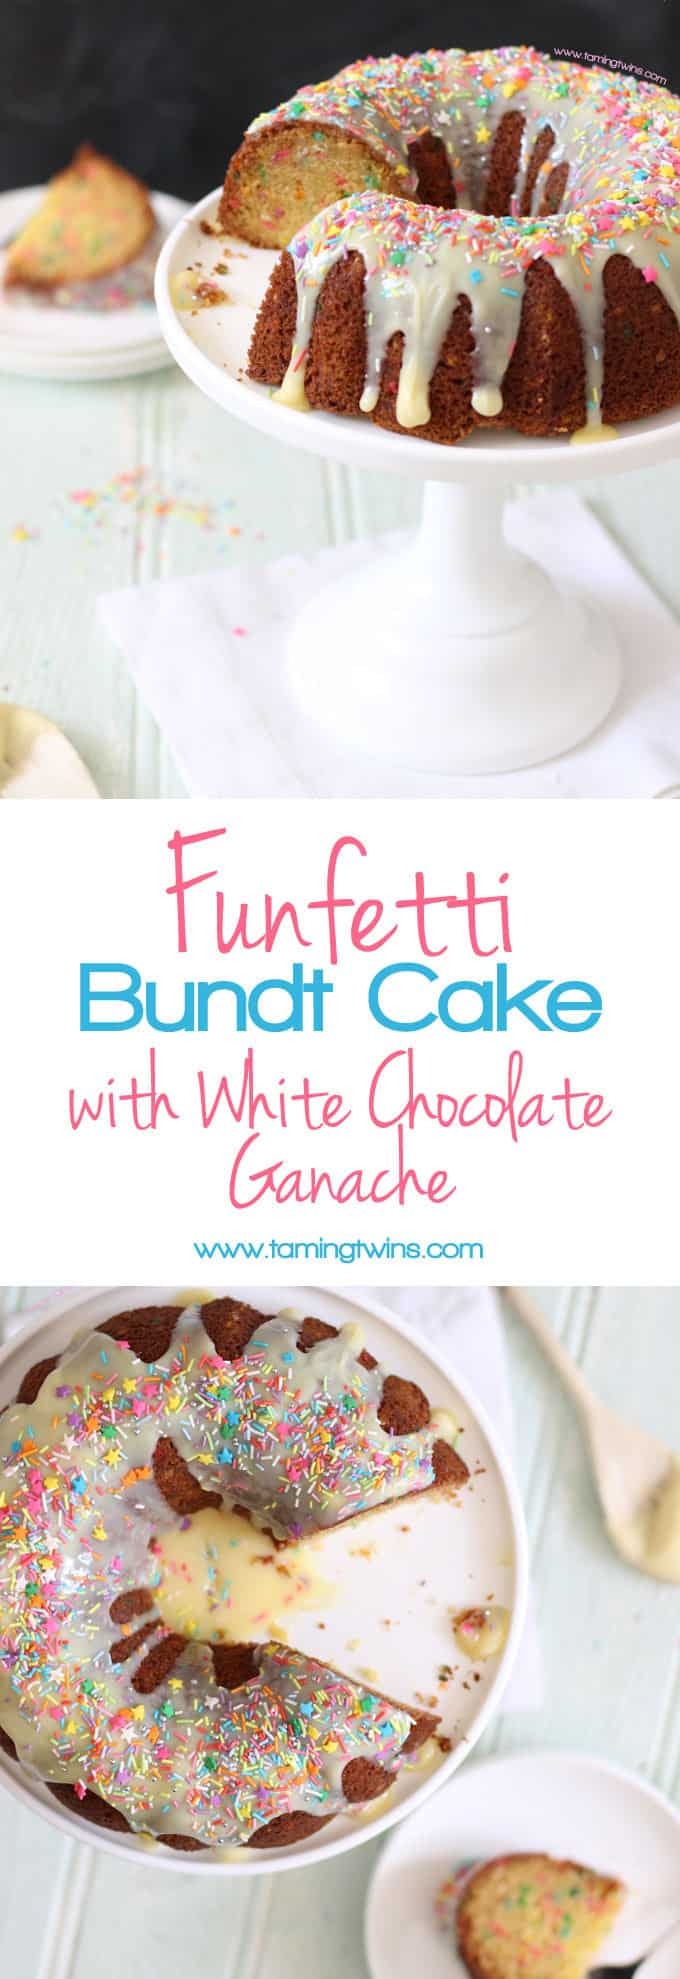 How To Make Choc Bundt Cake